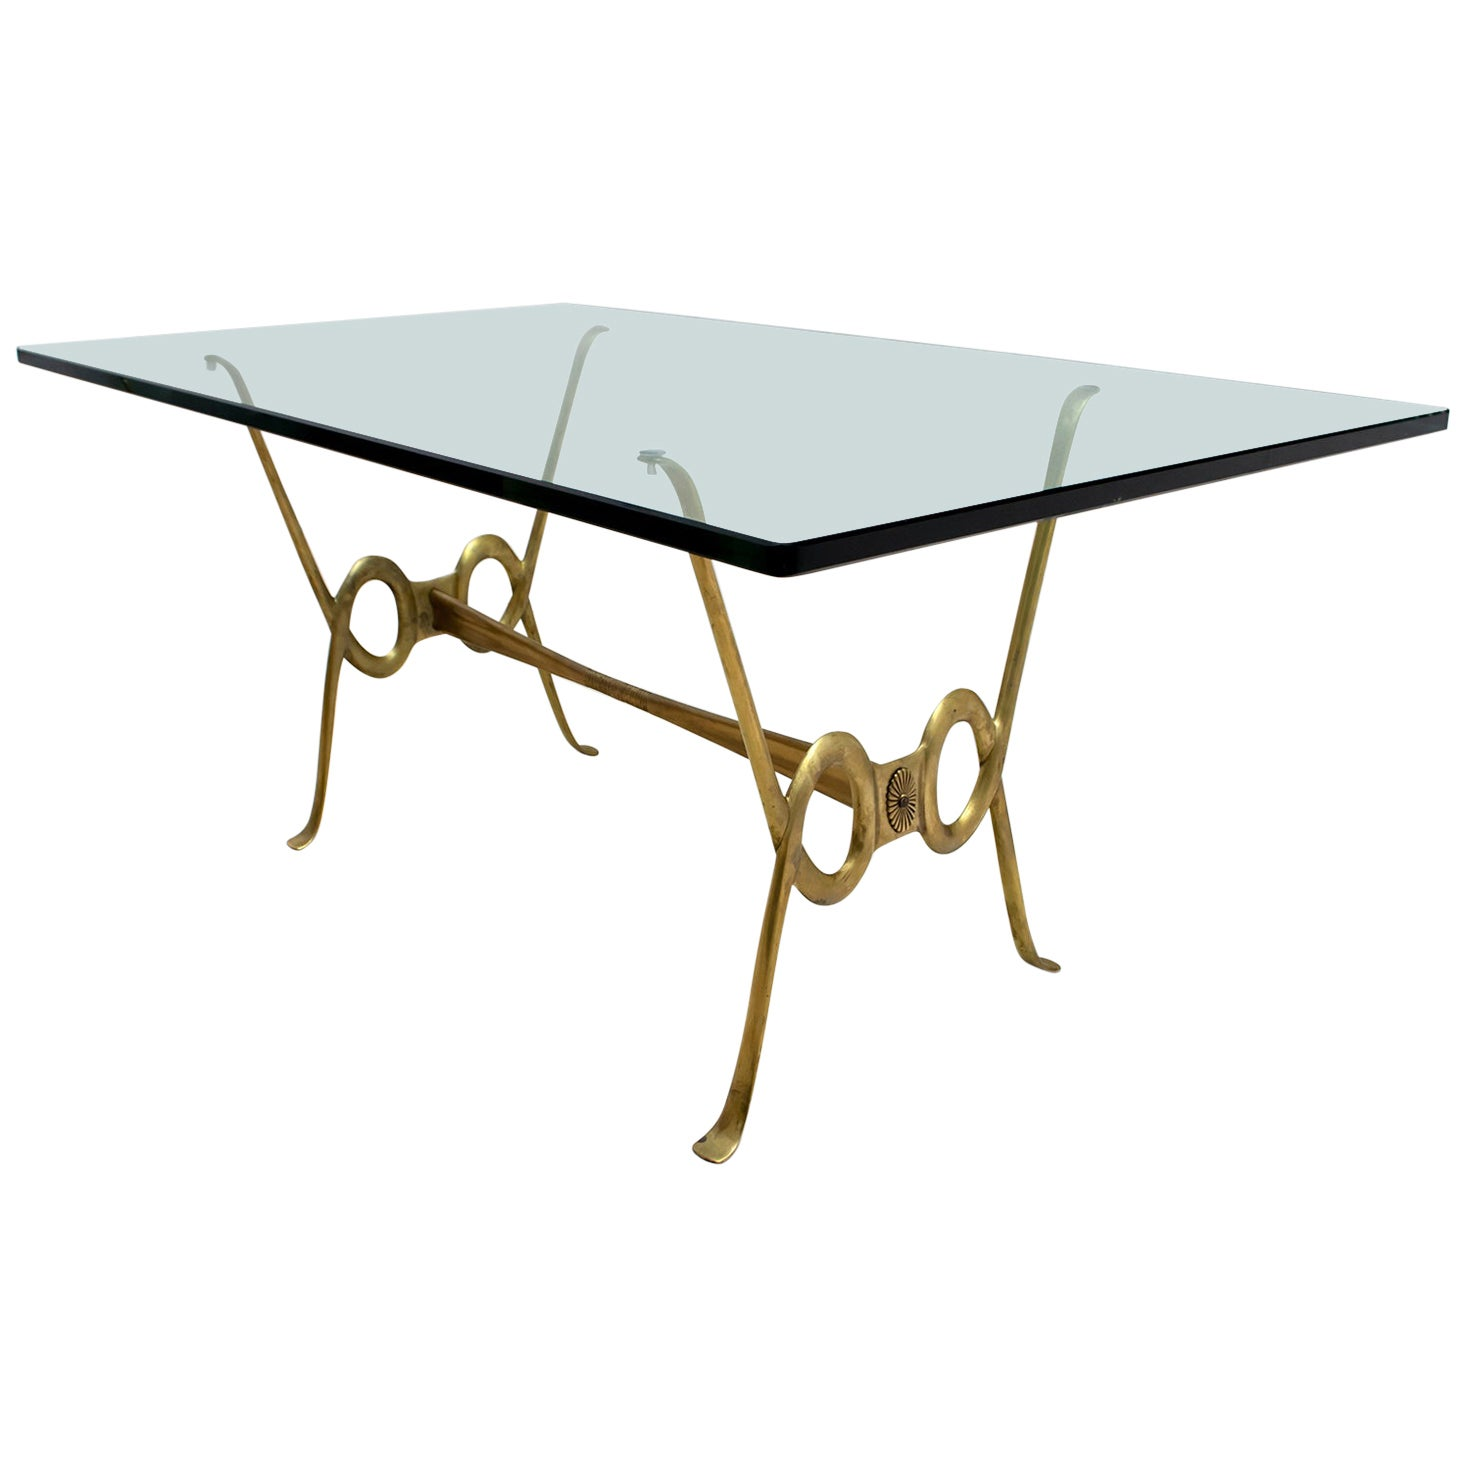 After Osvaldo Borsani Midcentury Italian Brass and Crystal Coffee Table, 1950s